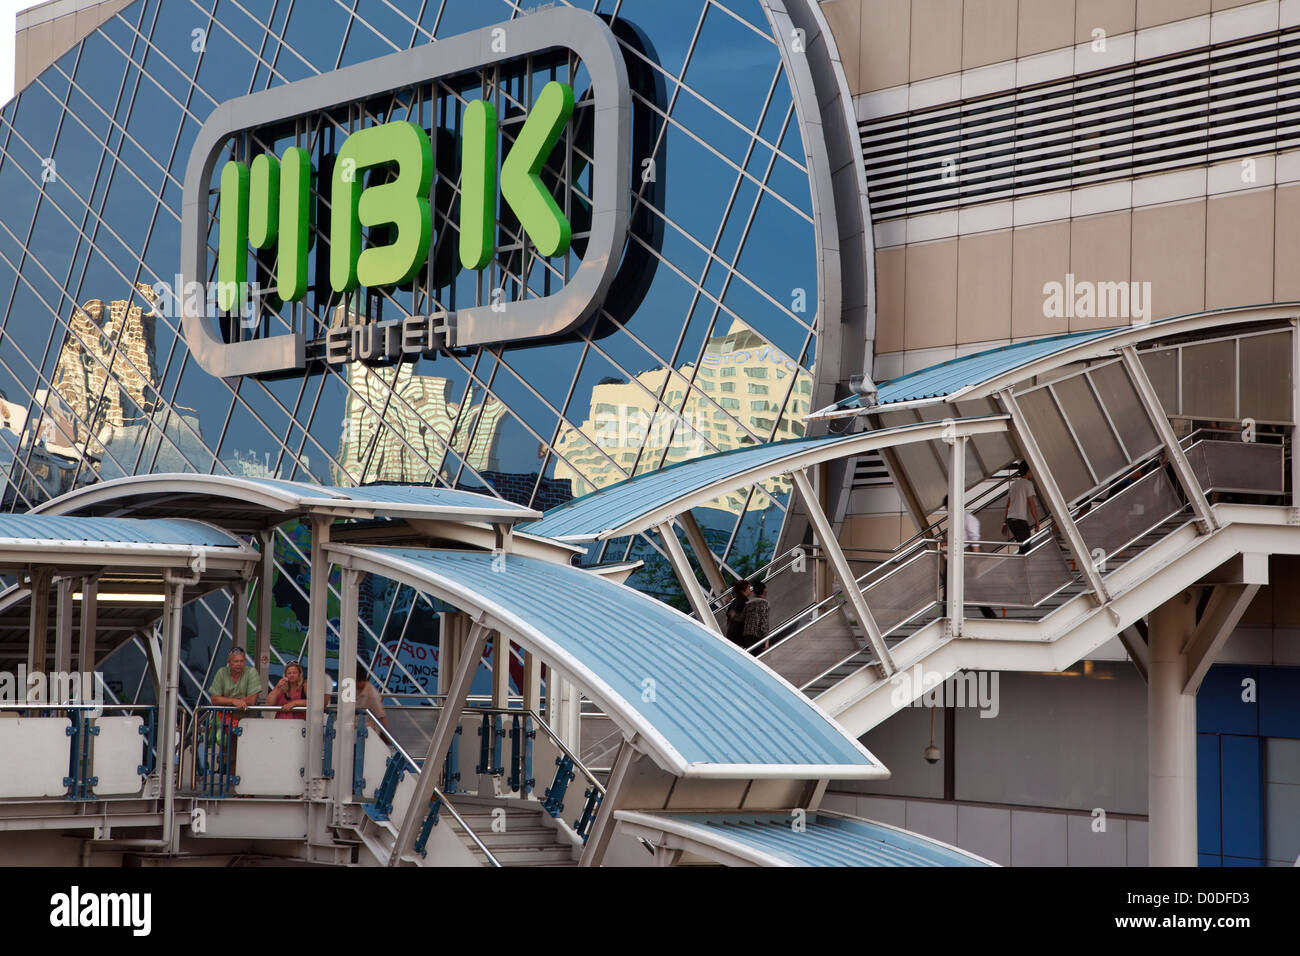 STAIRWAY UP TO THE MBK CENTER ONE OF THE BIGGEST SHOPPING MALLS IN THE CITY BANGKOK THAILAND - Stock Image